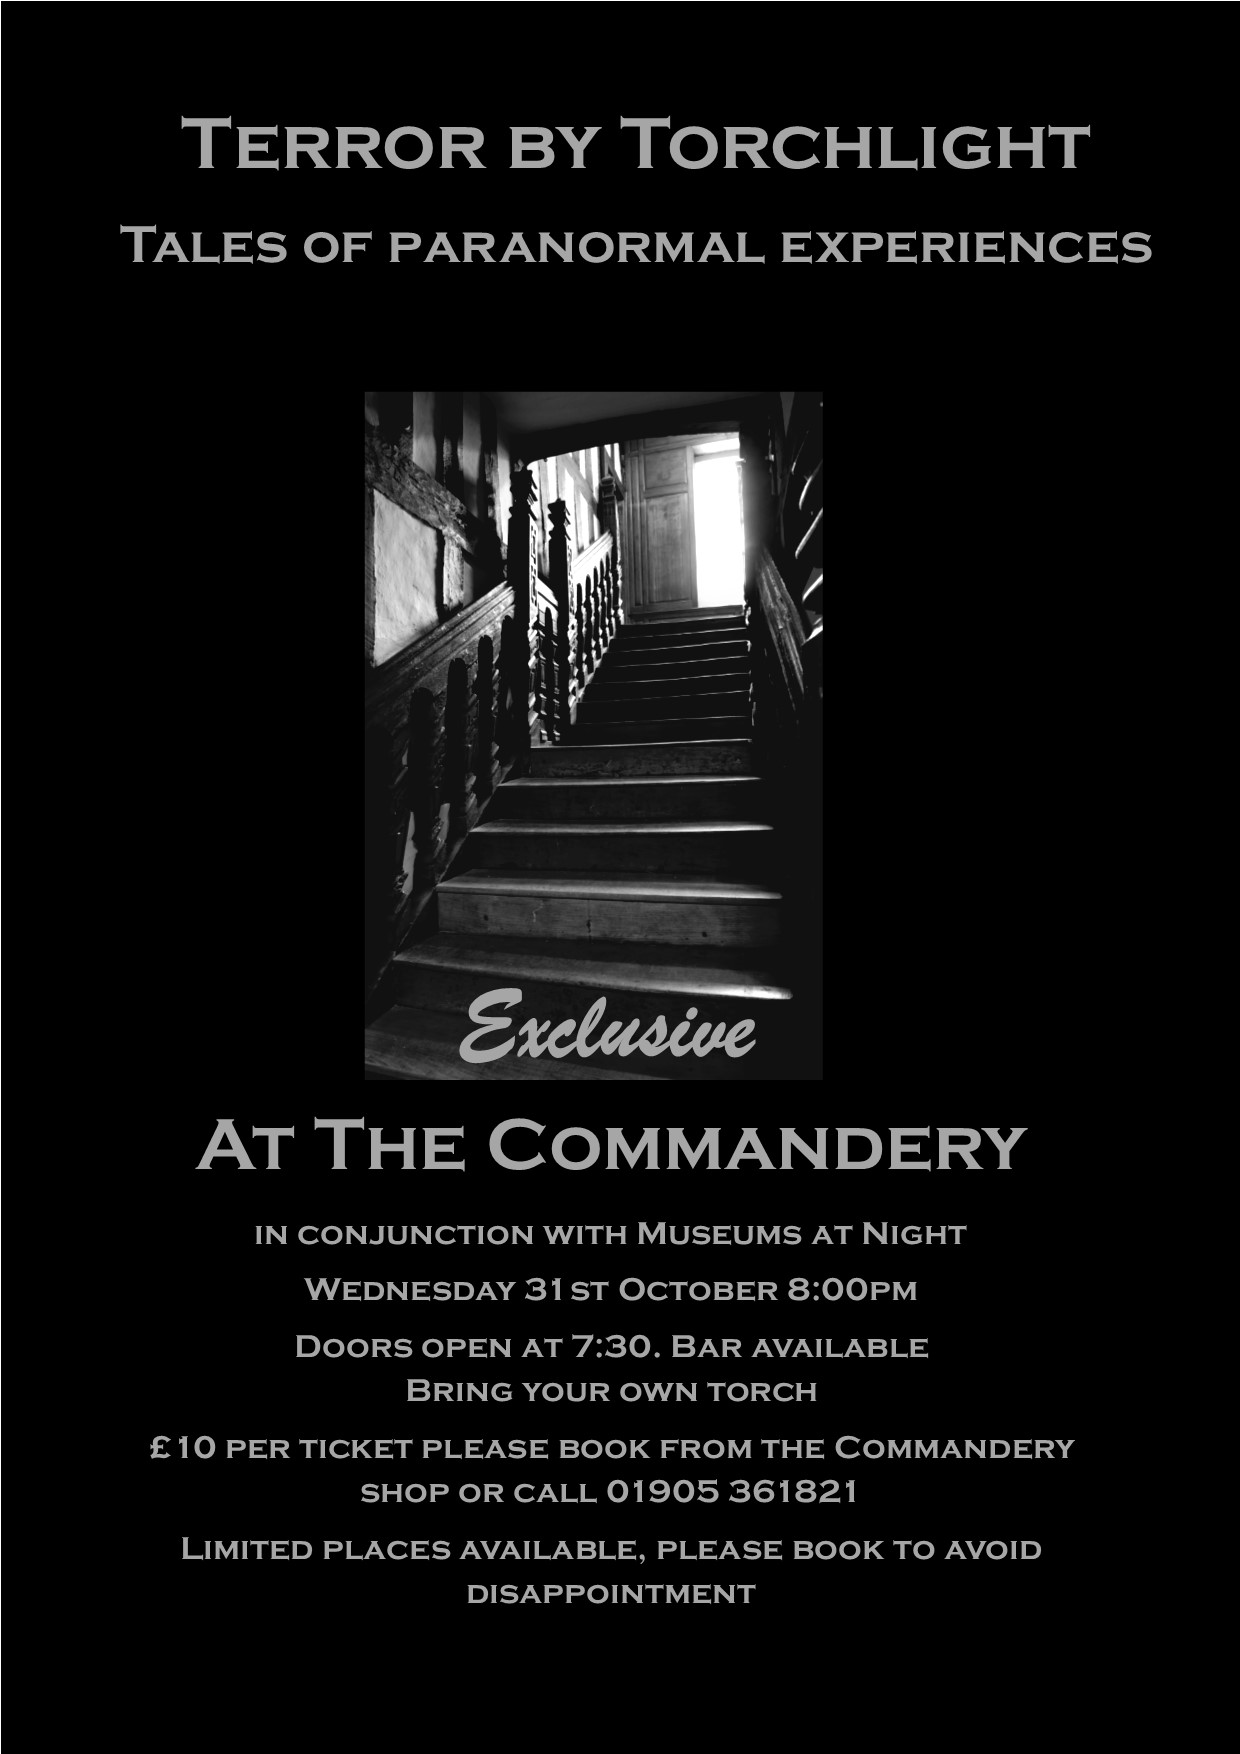 Terror by Torchlight -Tales of Paranormal Experiences at The Commandery